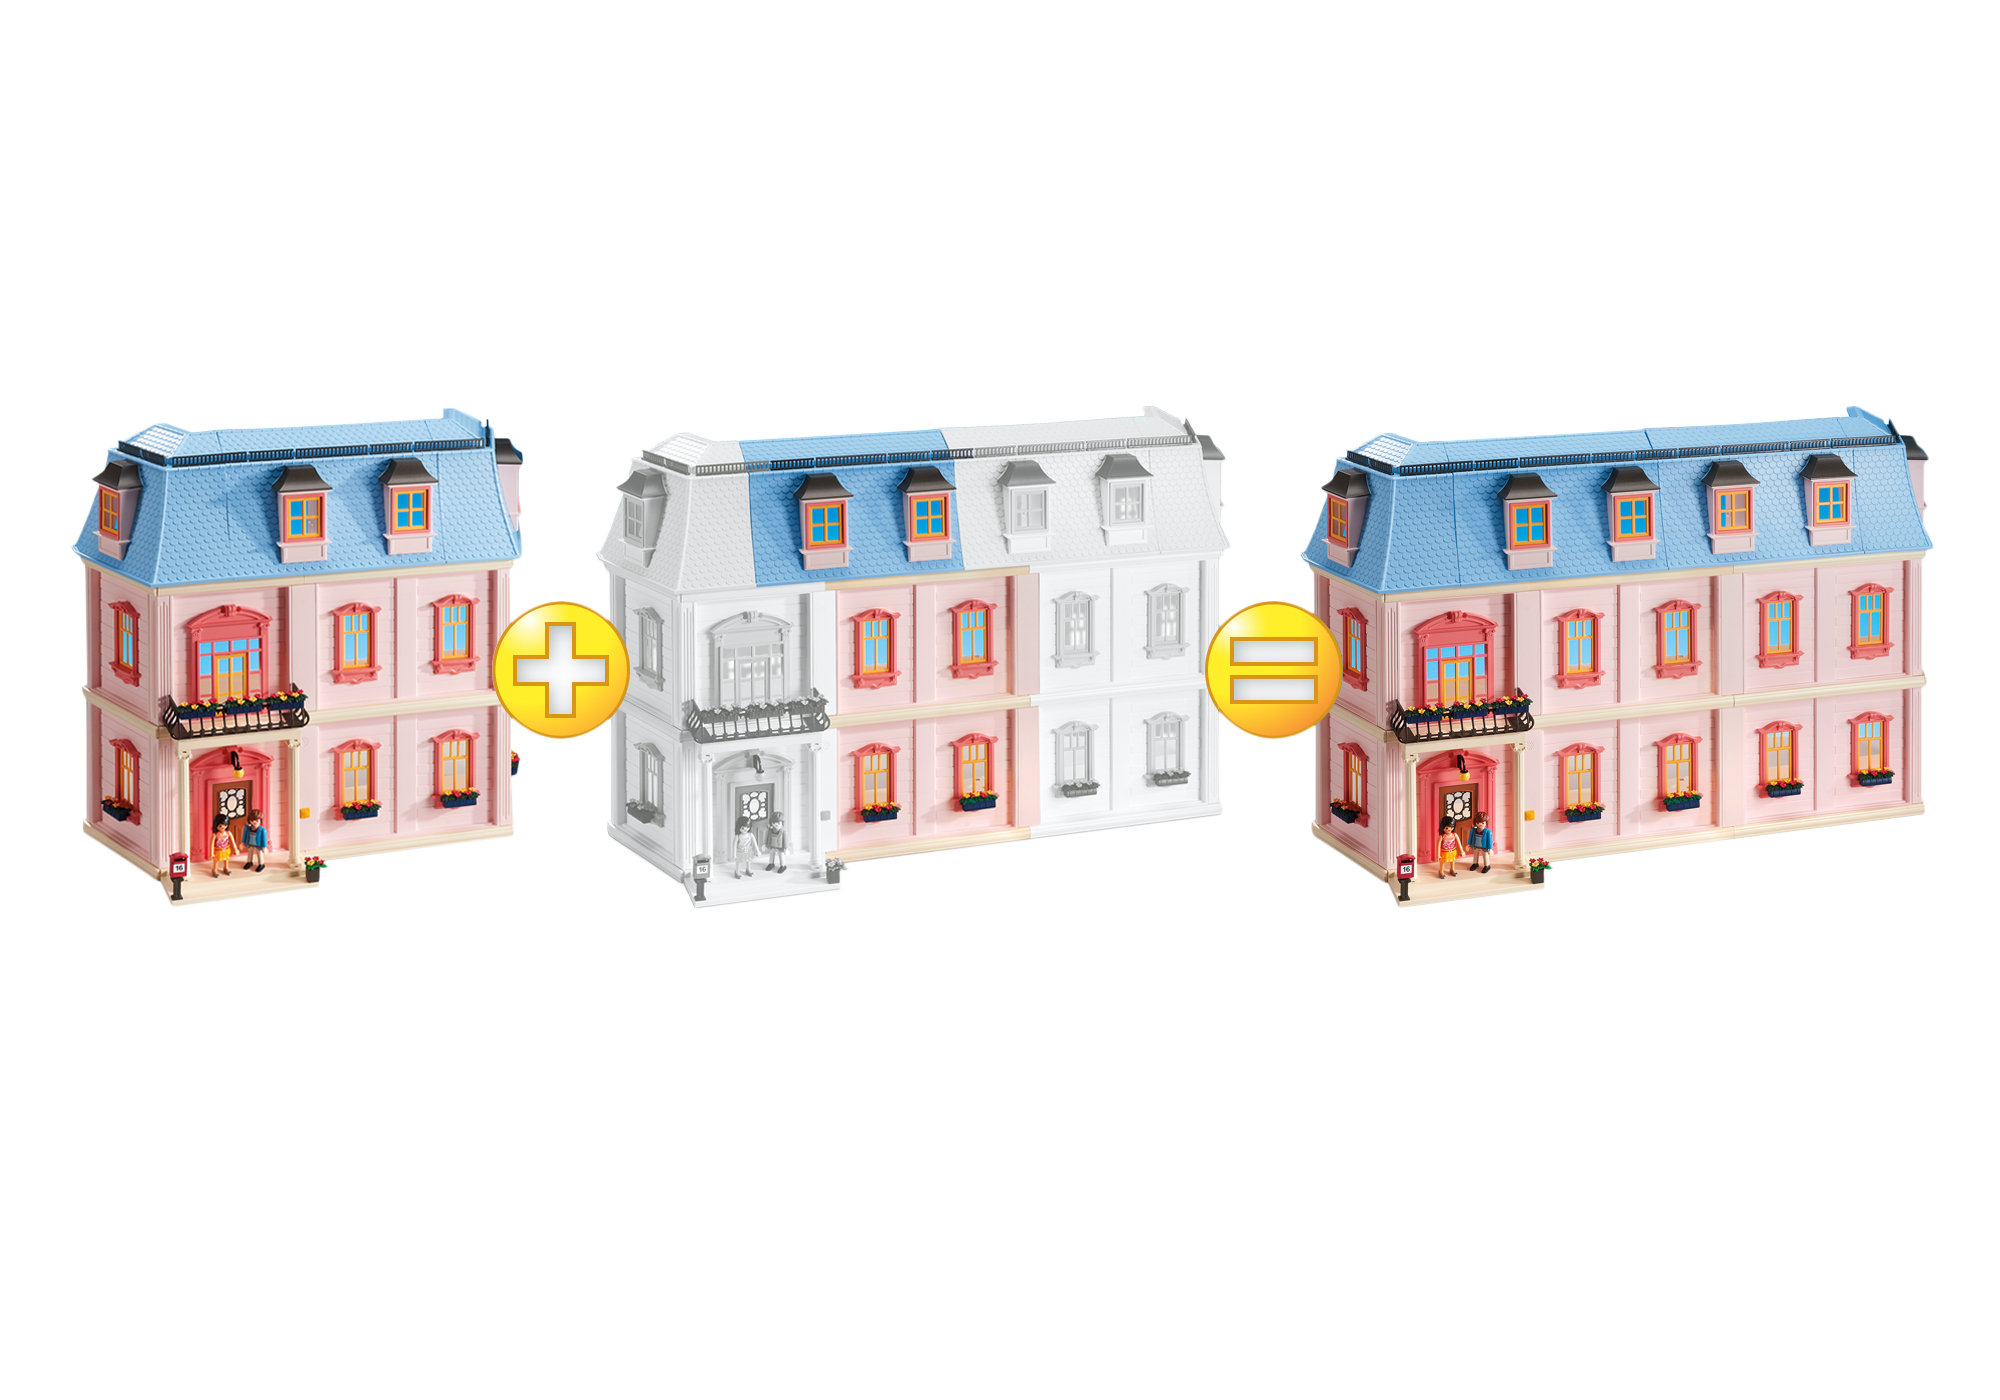 http://media.playmobil.com/i/playmobil/6452_product_extra1/Horizontal Extension for Deluxe Dollhouse (5303)